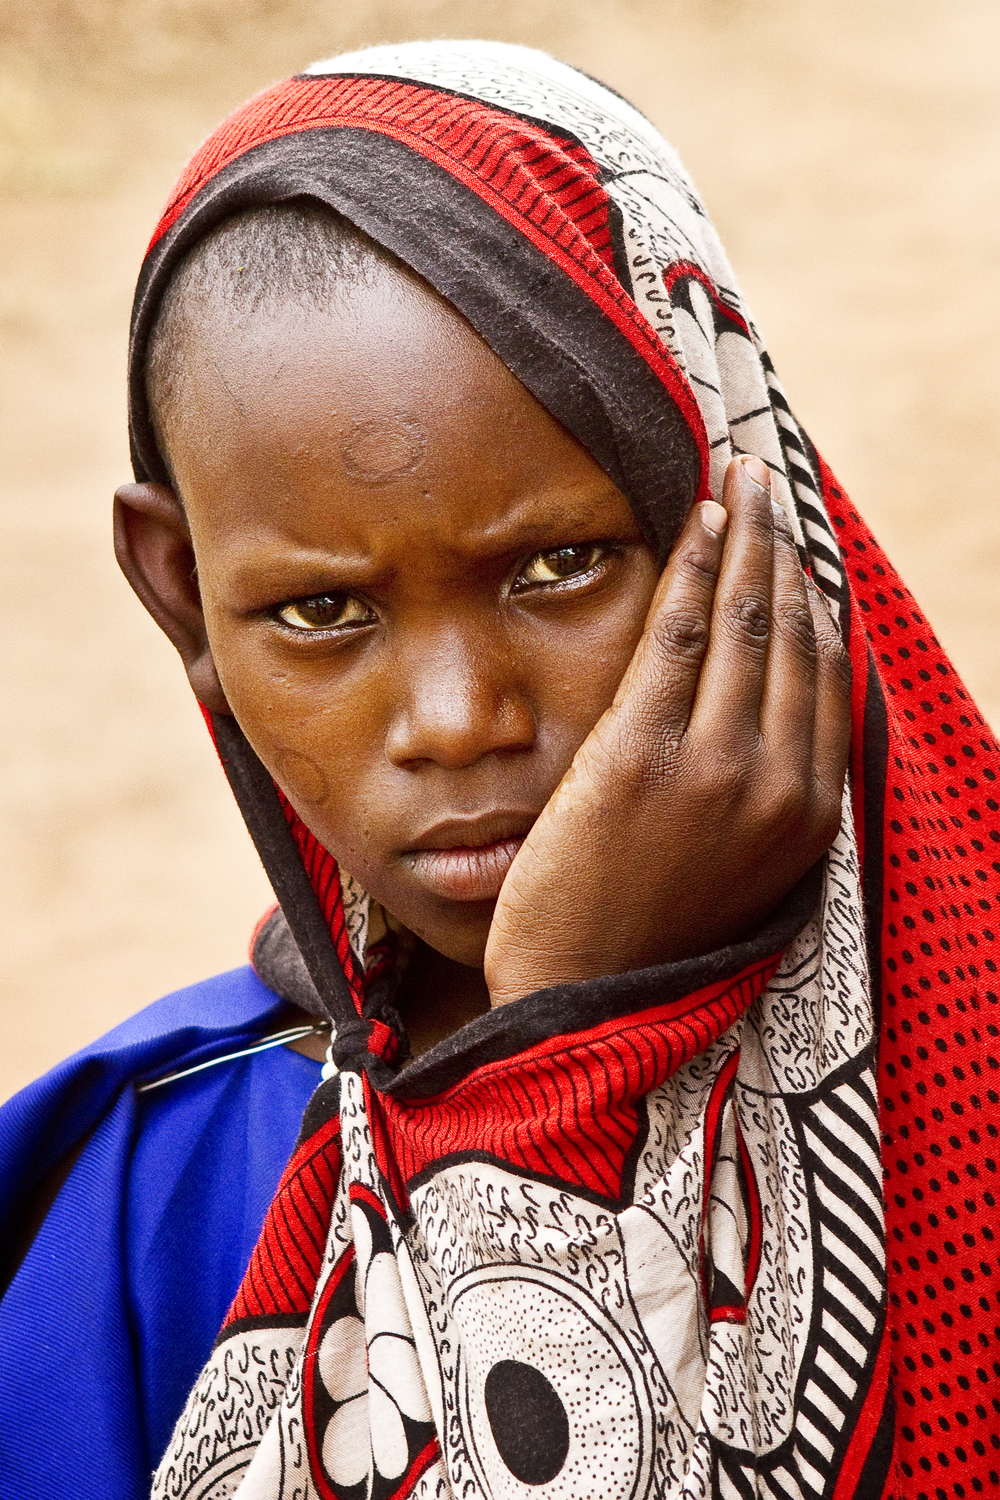 Maasai Child Face.jpg